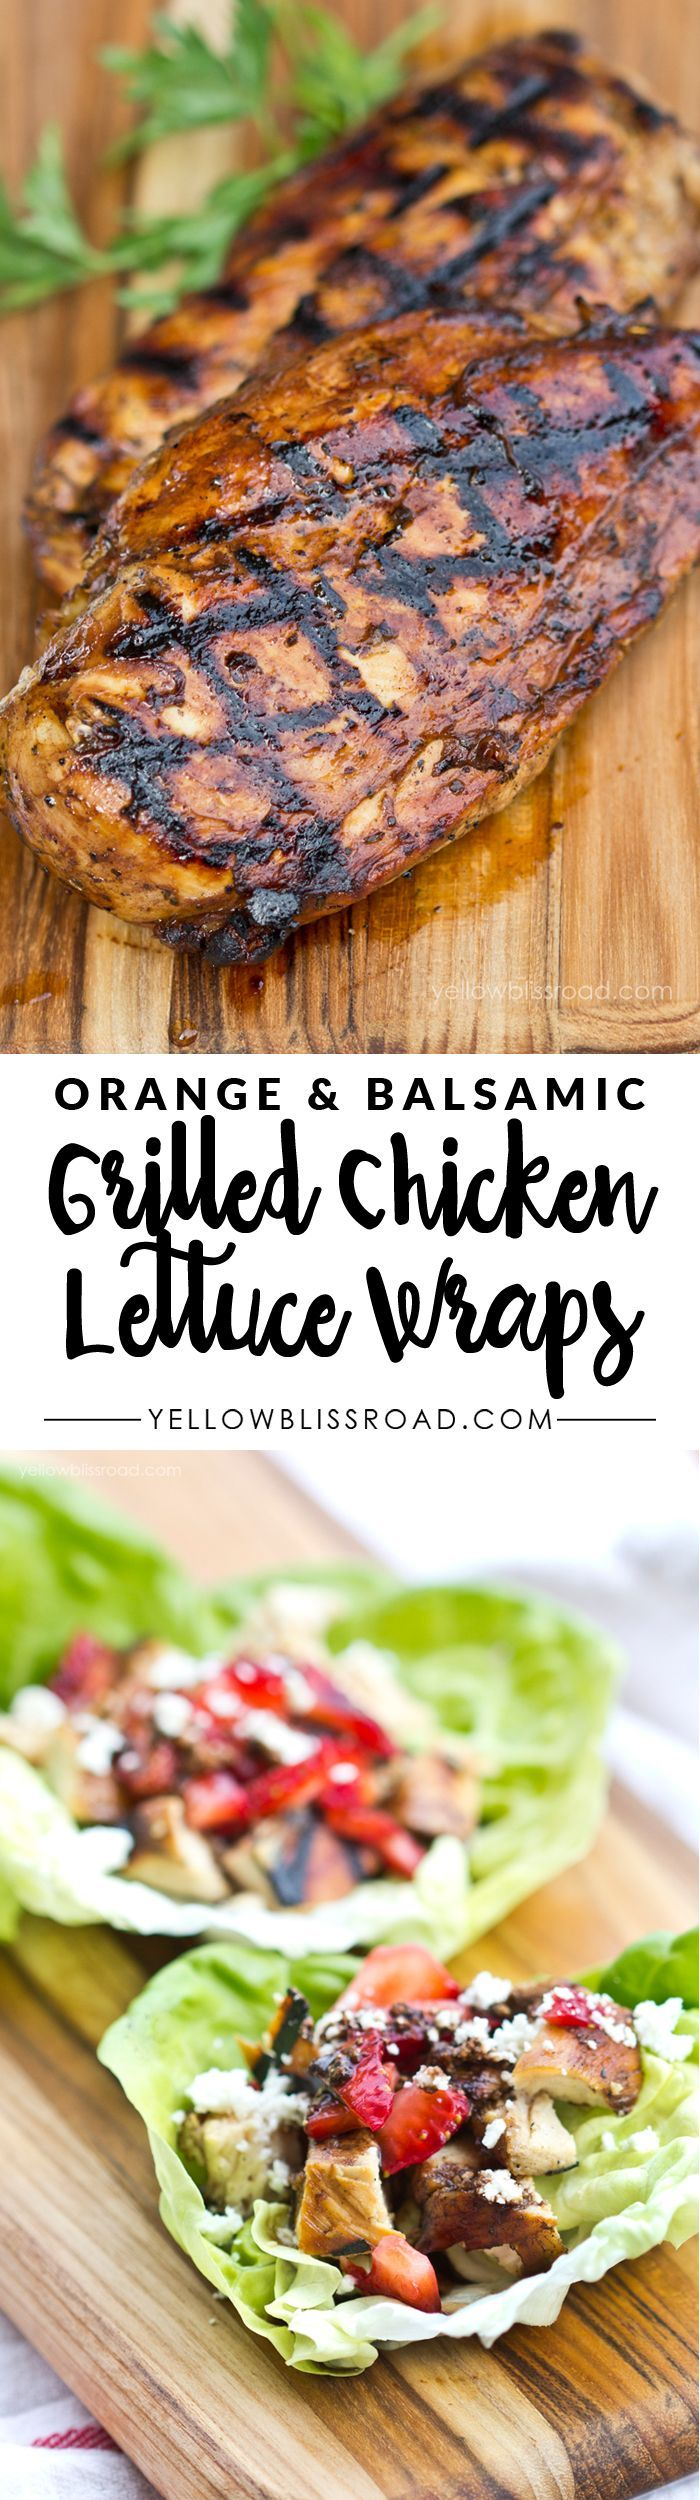 Orange & Balsamic Grilled Chicken Lettuce Wraps with Strawberries, Feta and Toasted Pecans